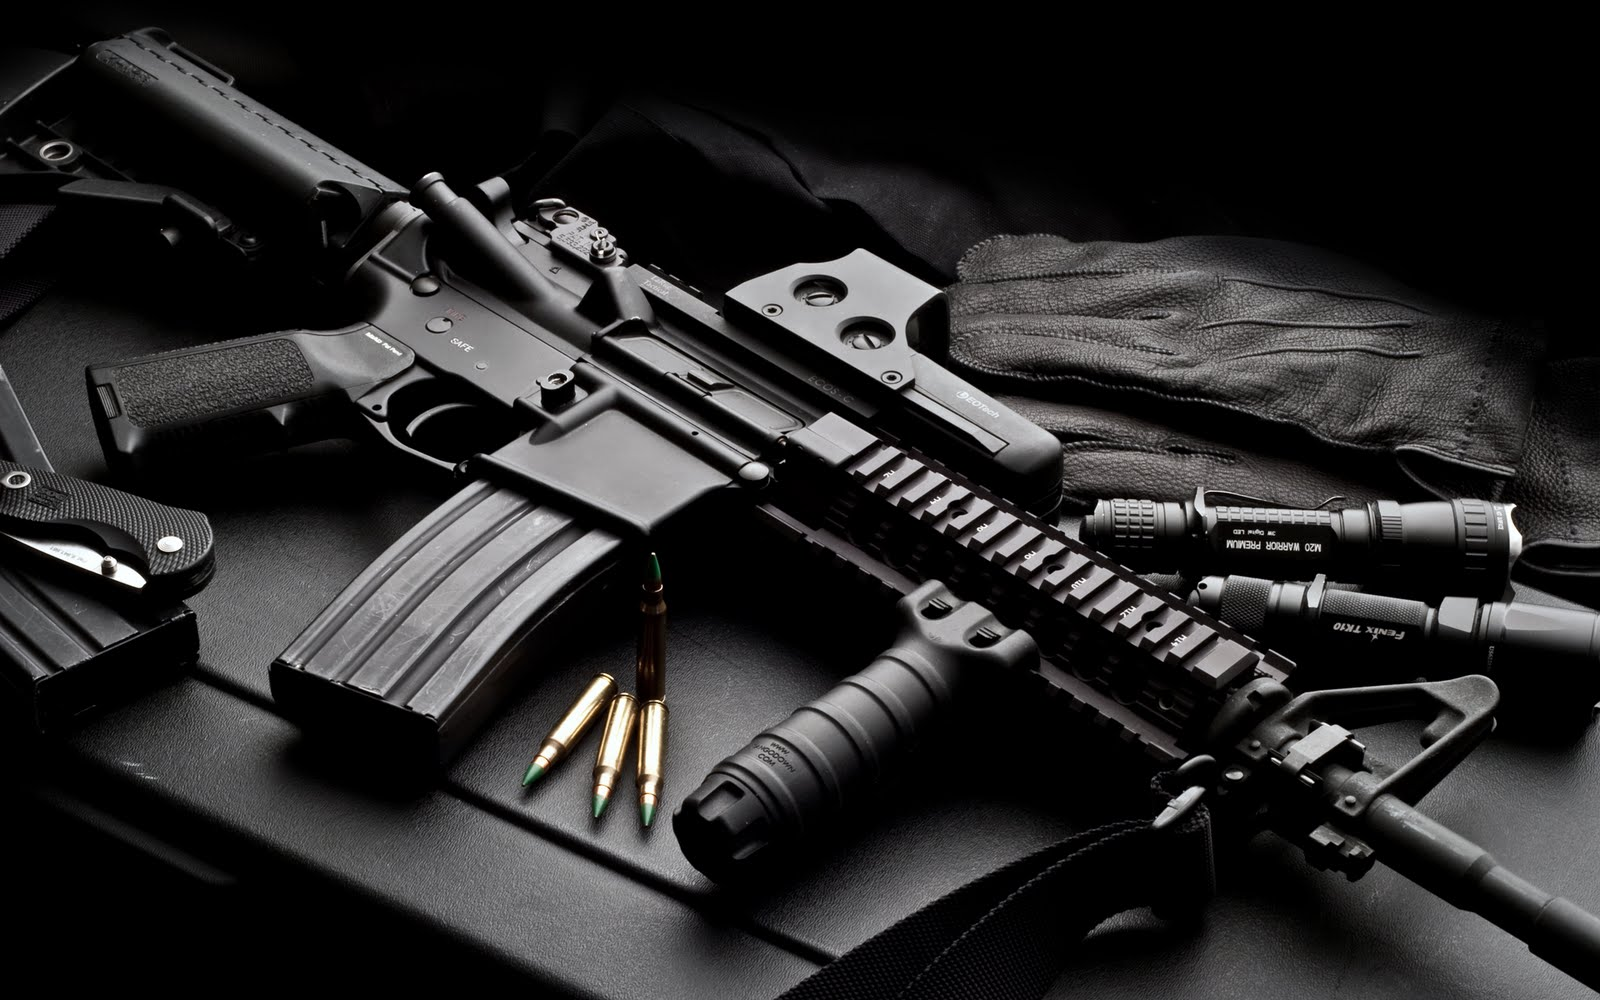 gun wallpaper cool gun wallpaper cool gun wallpaper machine gun 1600x1000